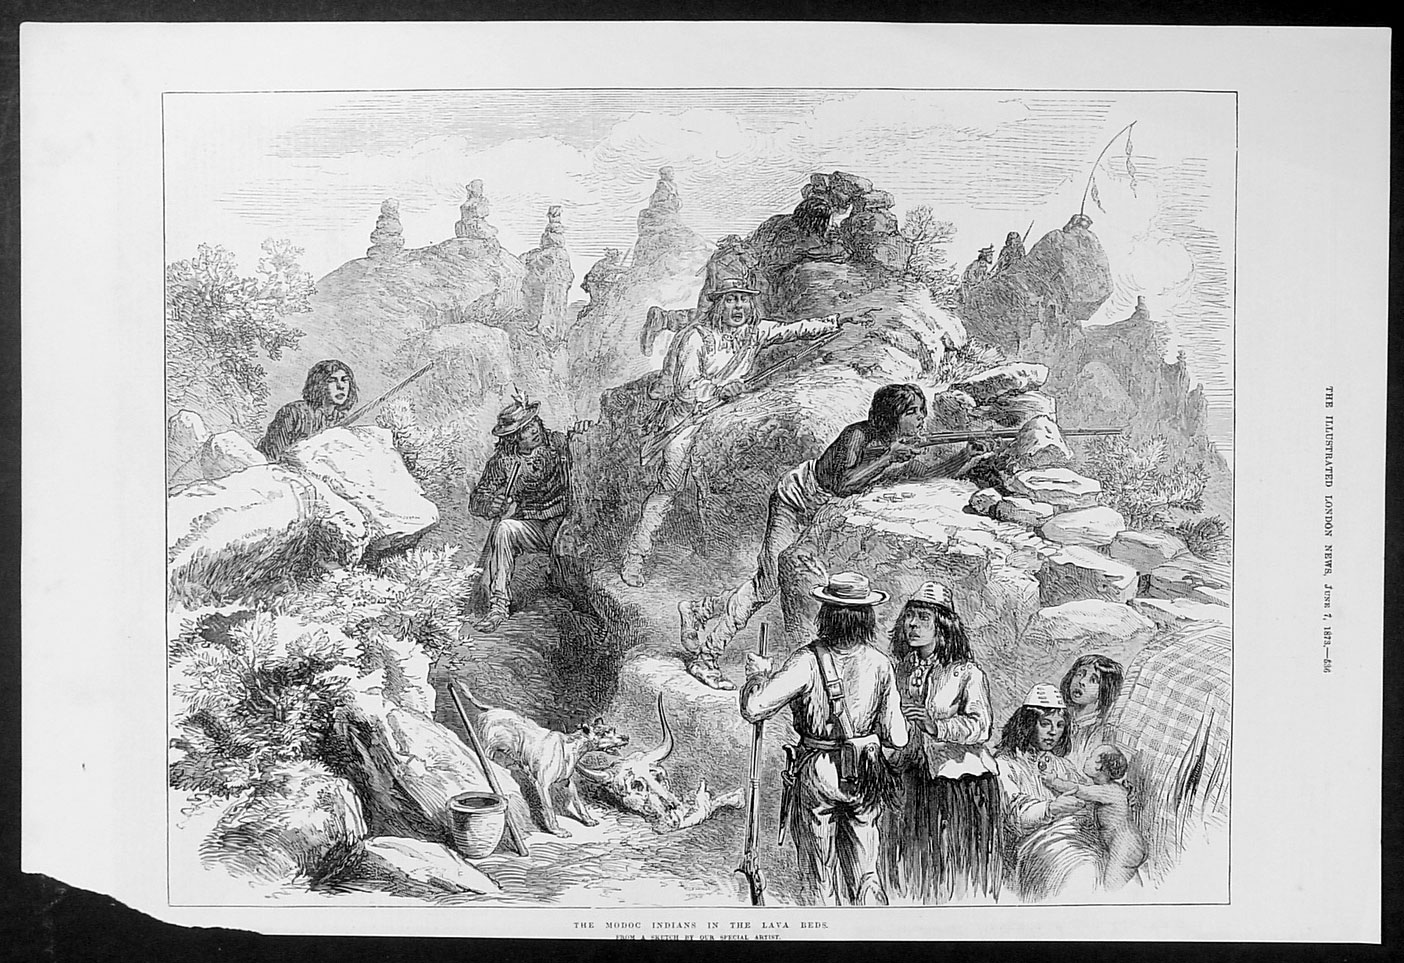 modoc indians The role of modoc war in the history of the united states of america.